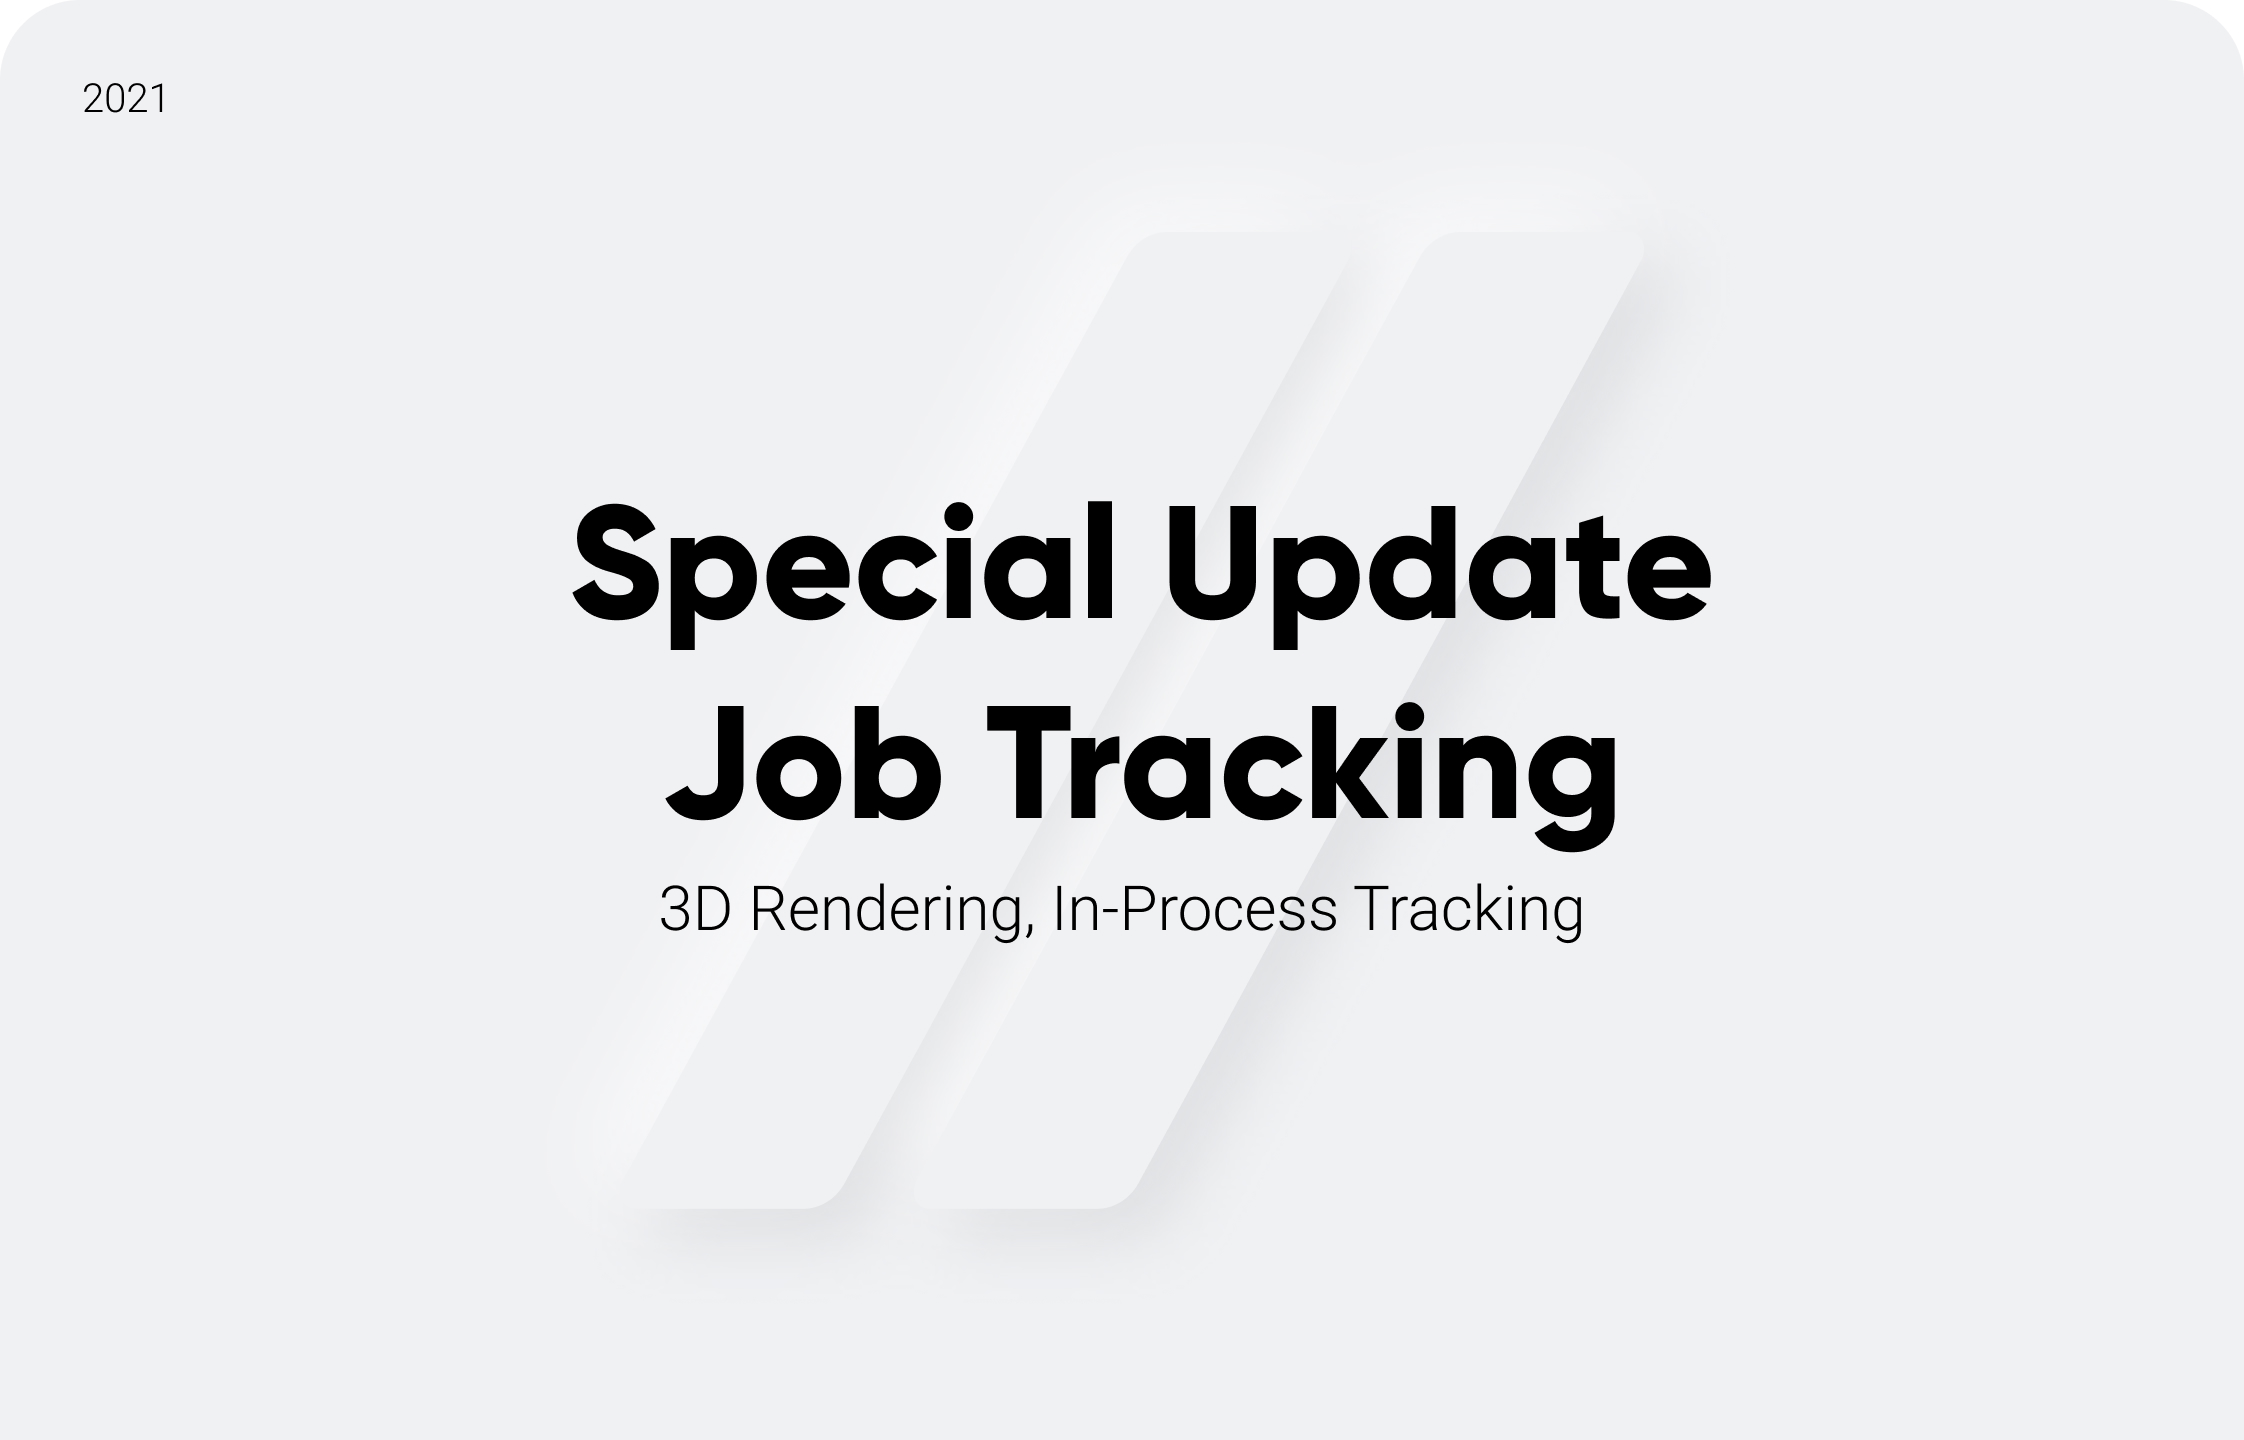 Special Update: Job Tracking